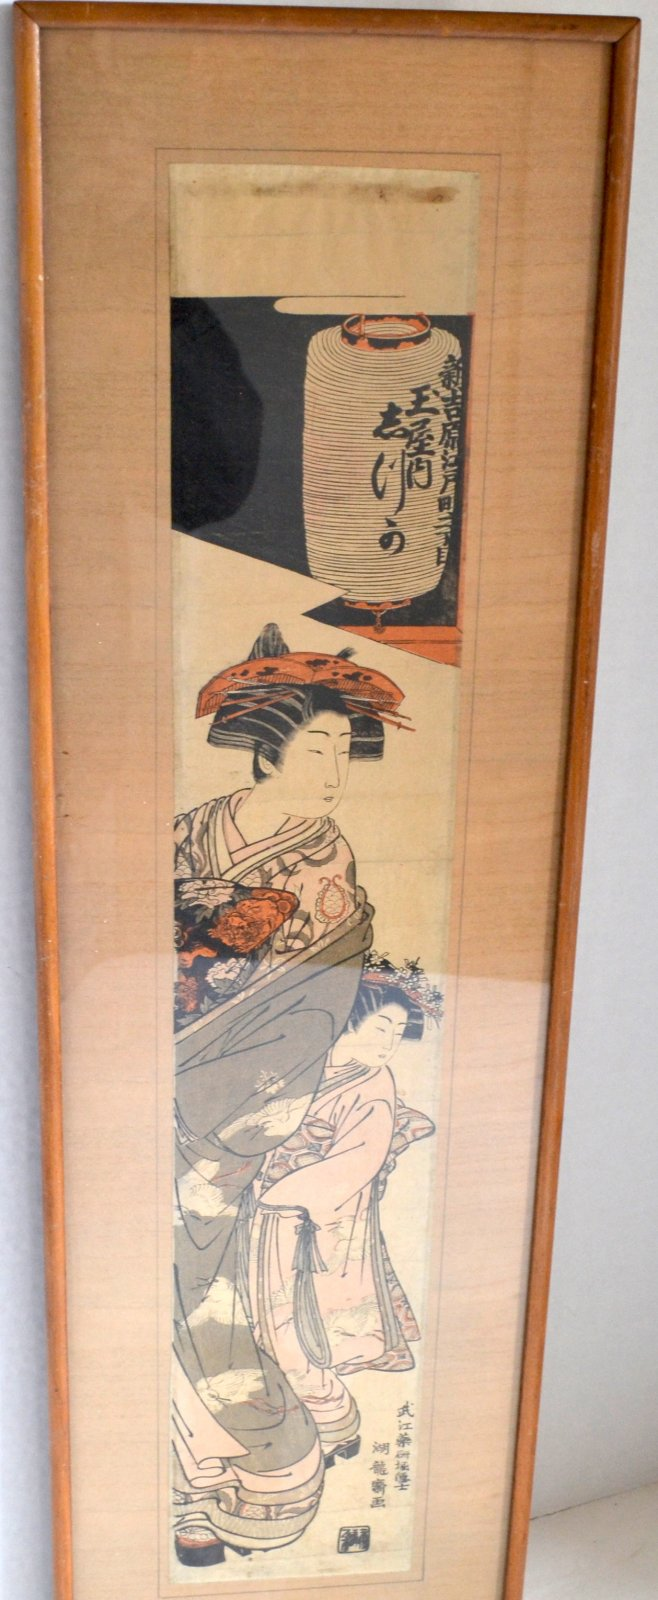 Japanese Wood Block Print of two women one small and one large.